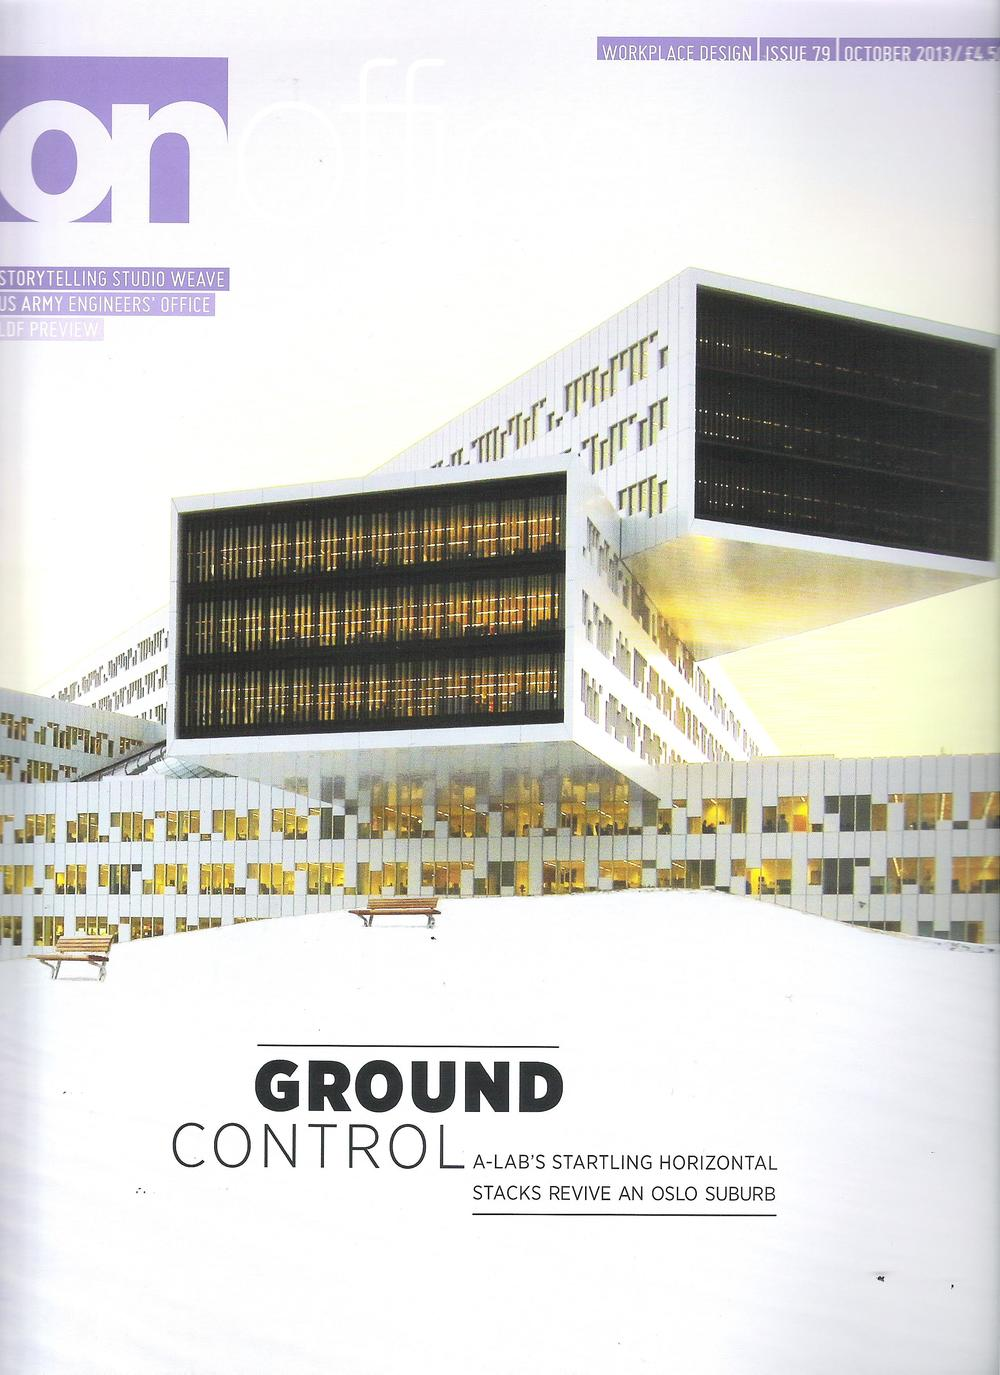 on office cover oct 2013.jpg